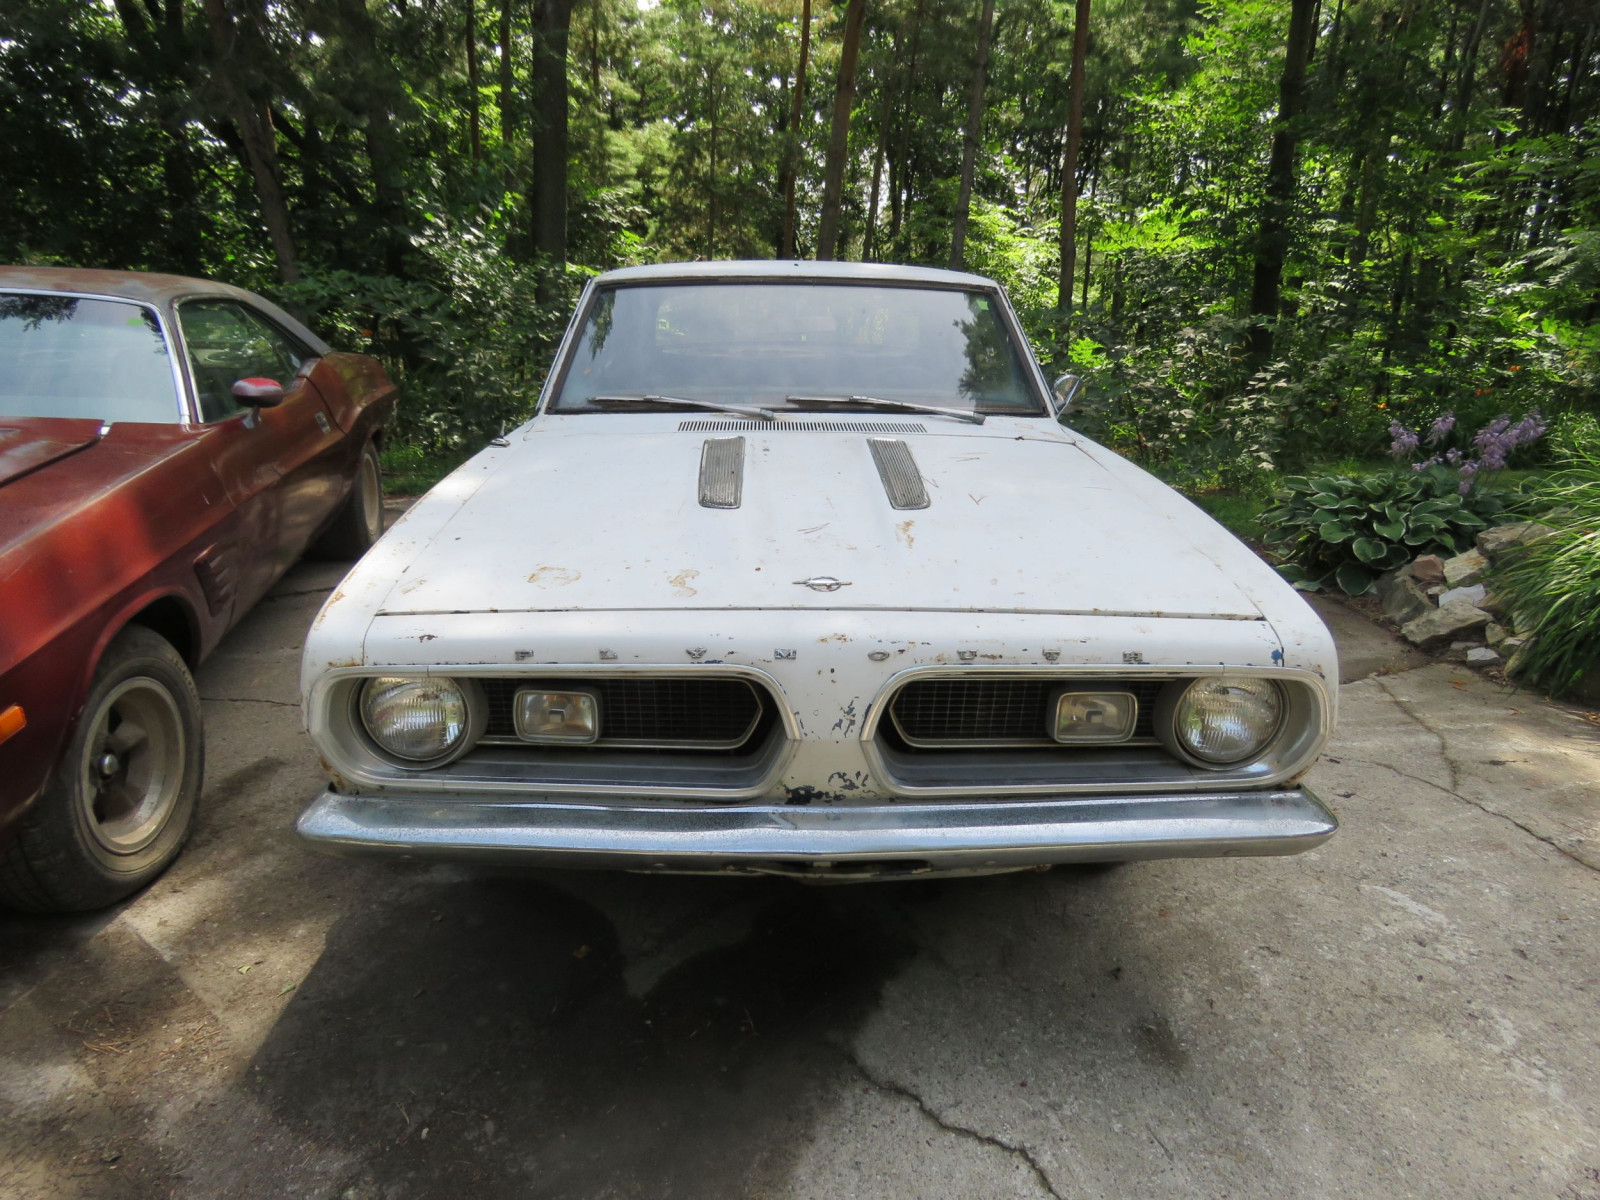 1967 Plymouth Barracuda 2dr HT Coupe - Image 2